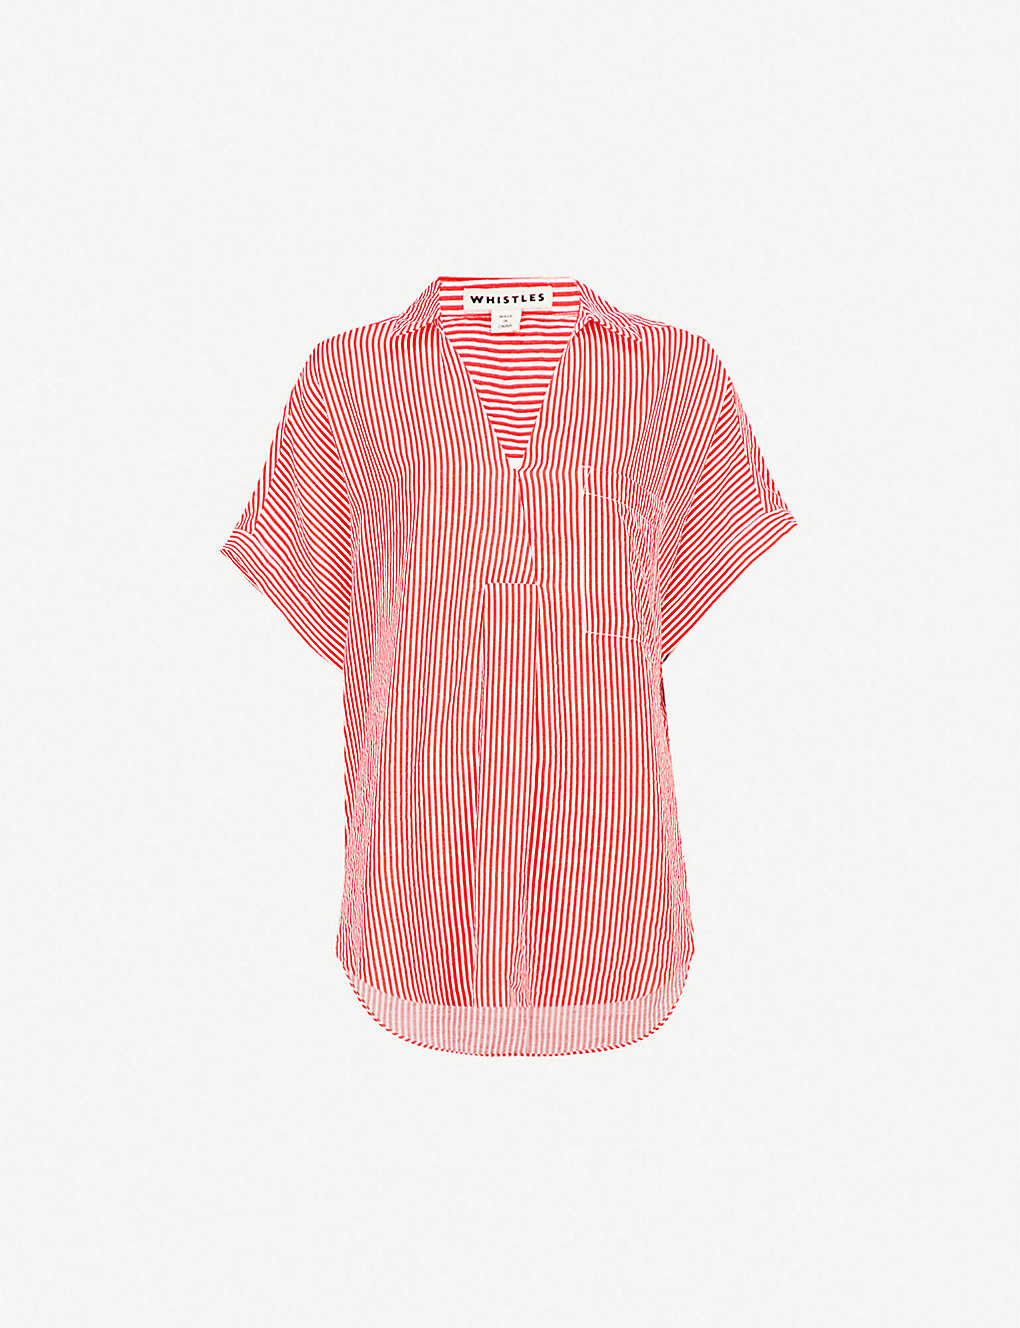 e4edc297de6620 WHISTLES - Lea striped woven shirt | Selfridges.com